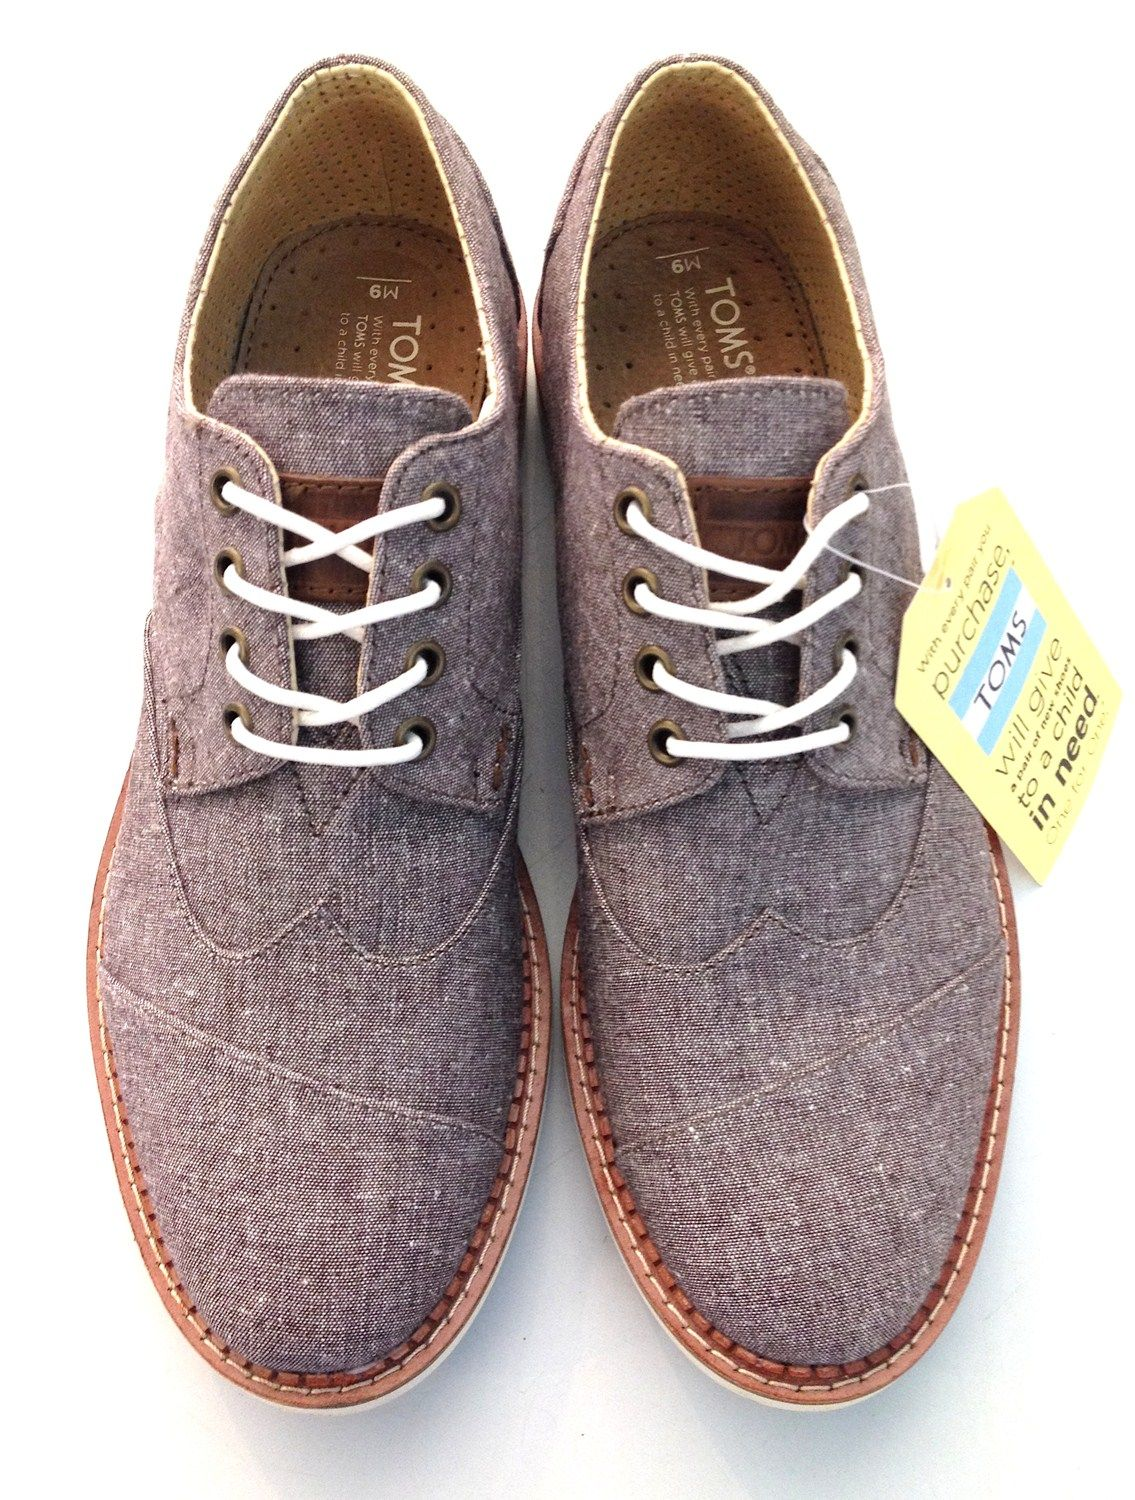 New! TOMS Men's Brown Chambray Brogue | Our most popular men's ...